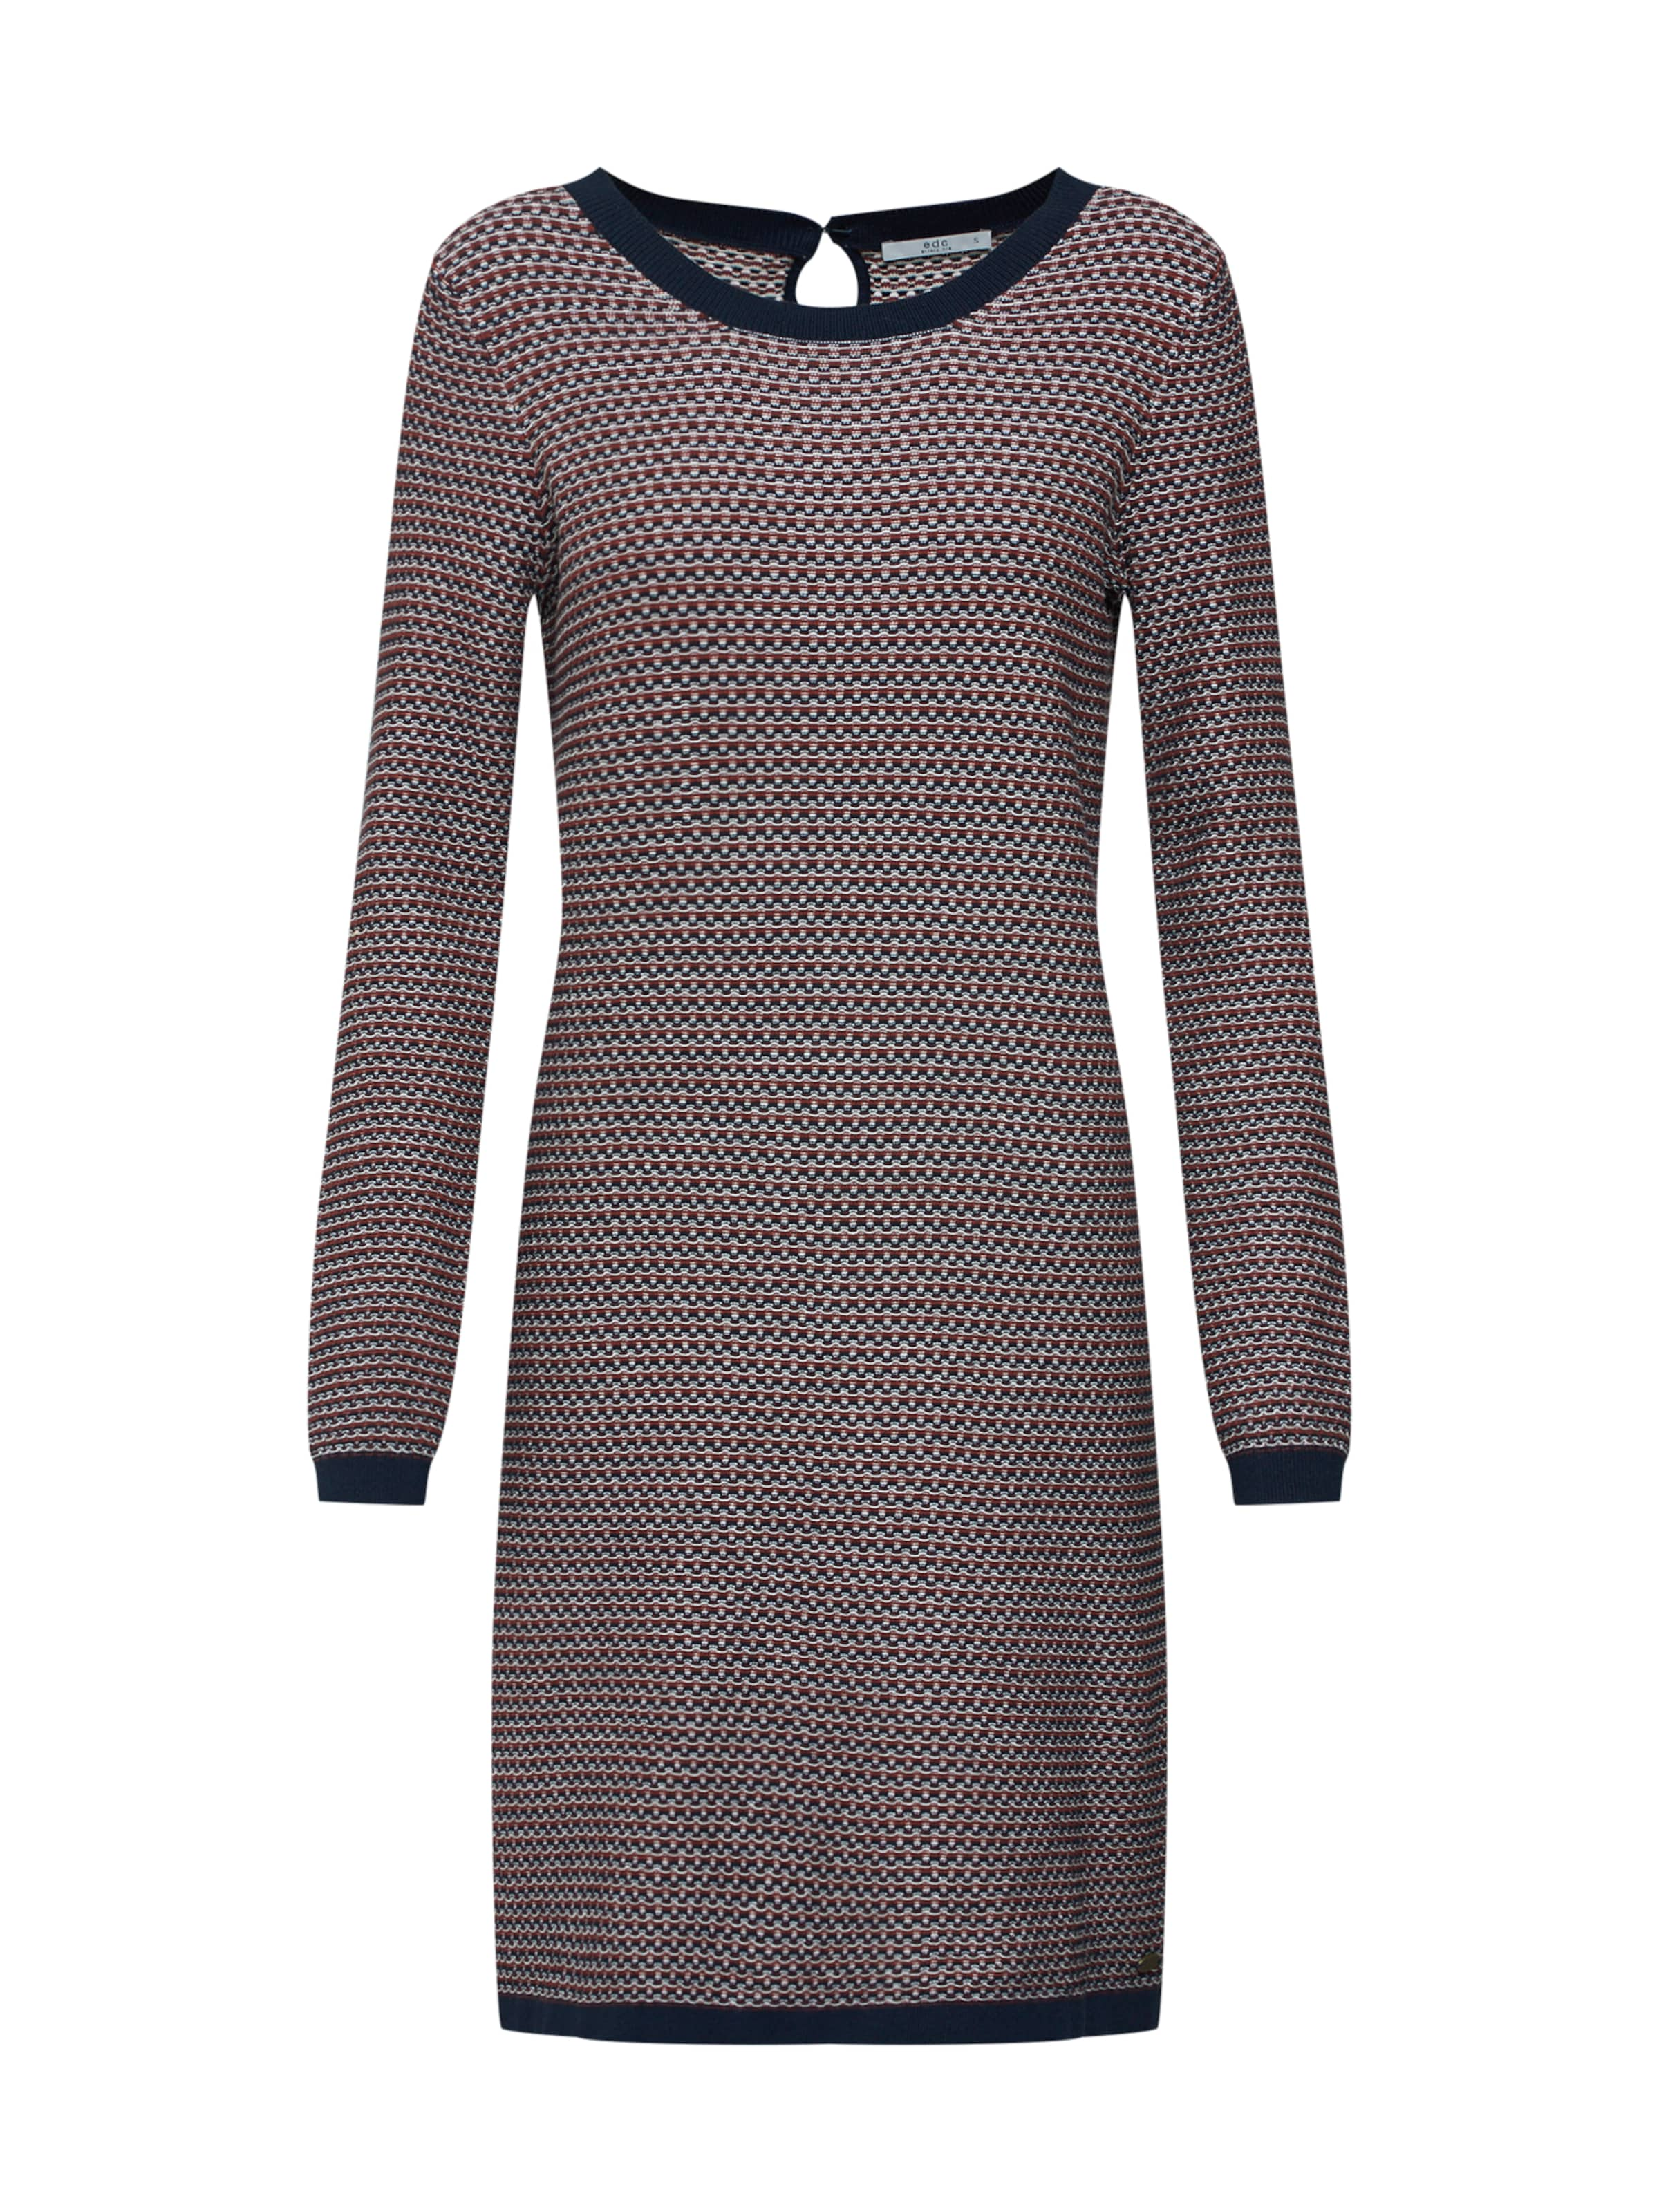 Flat By Dress Mischfarben In 'ocs Cot Knitted' Edc Esprit Dresses Kleid OPX0w8Nnk